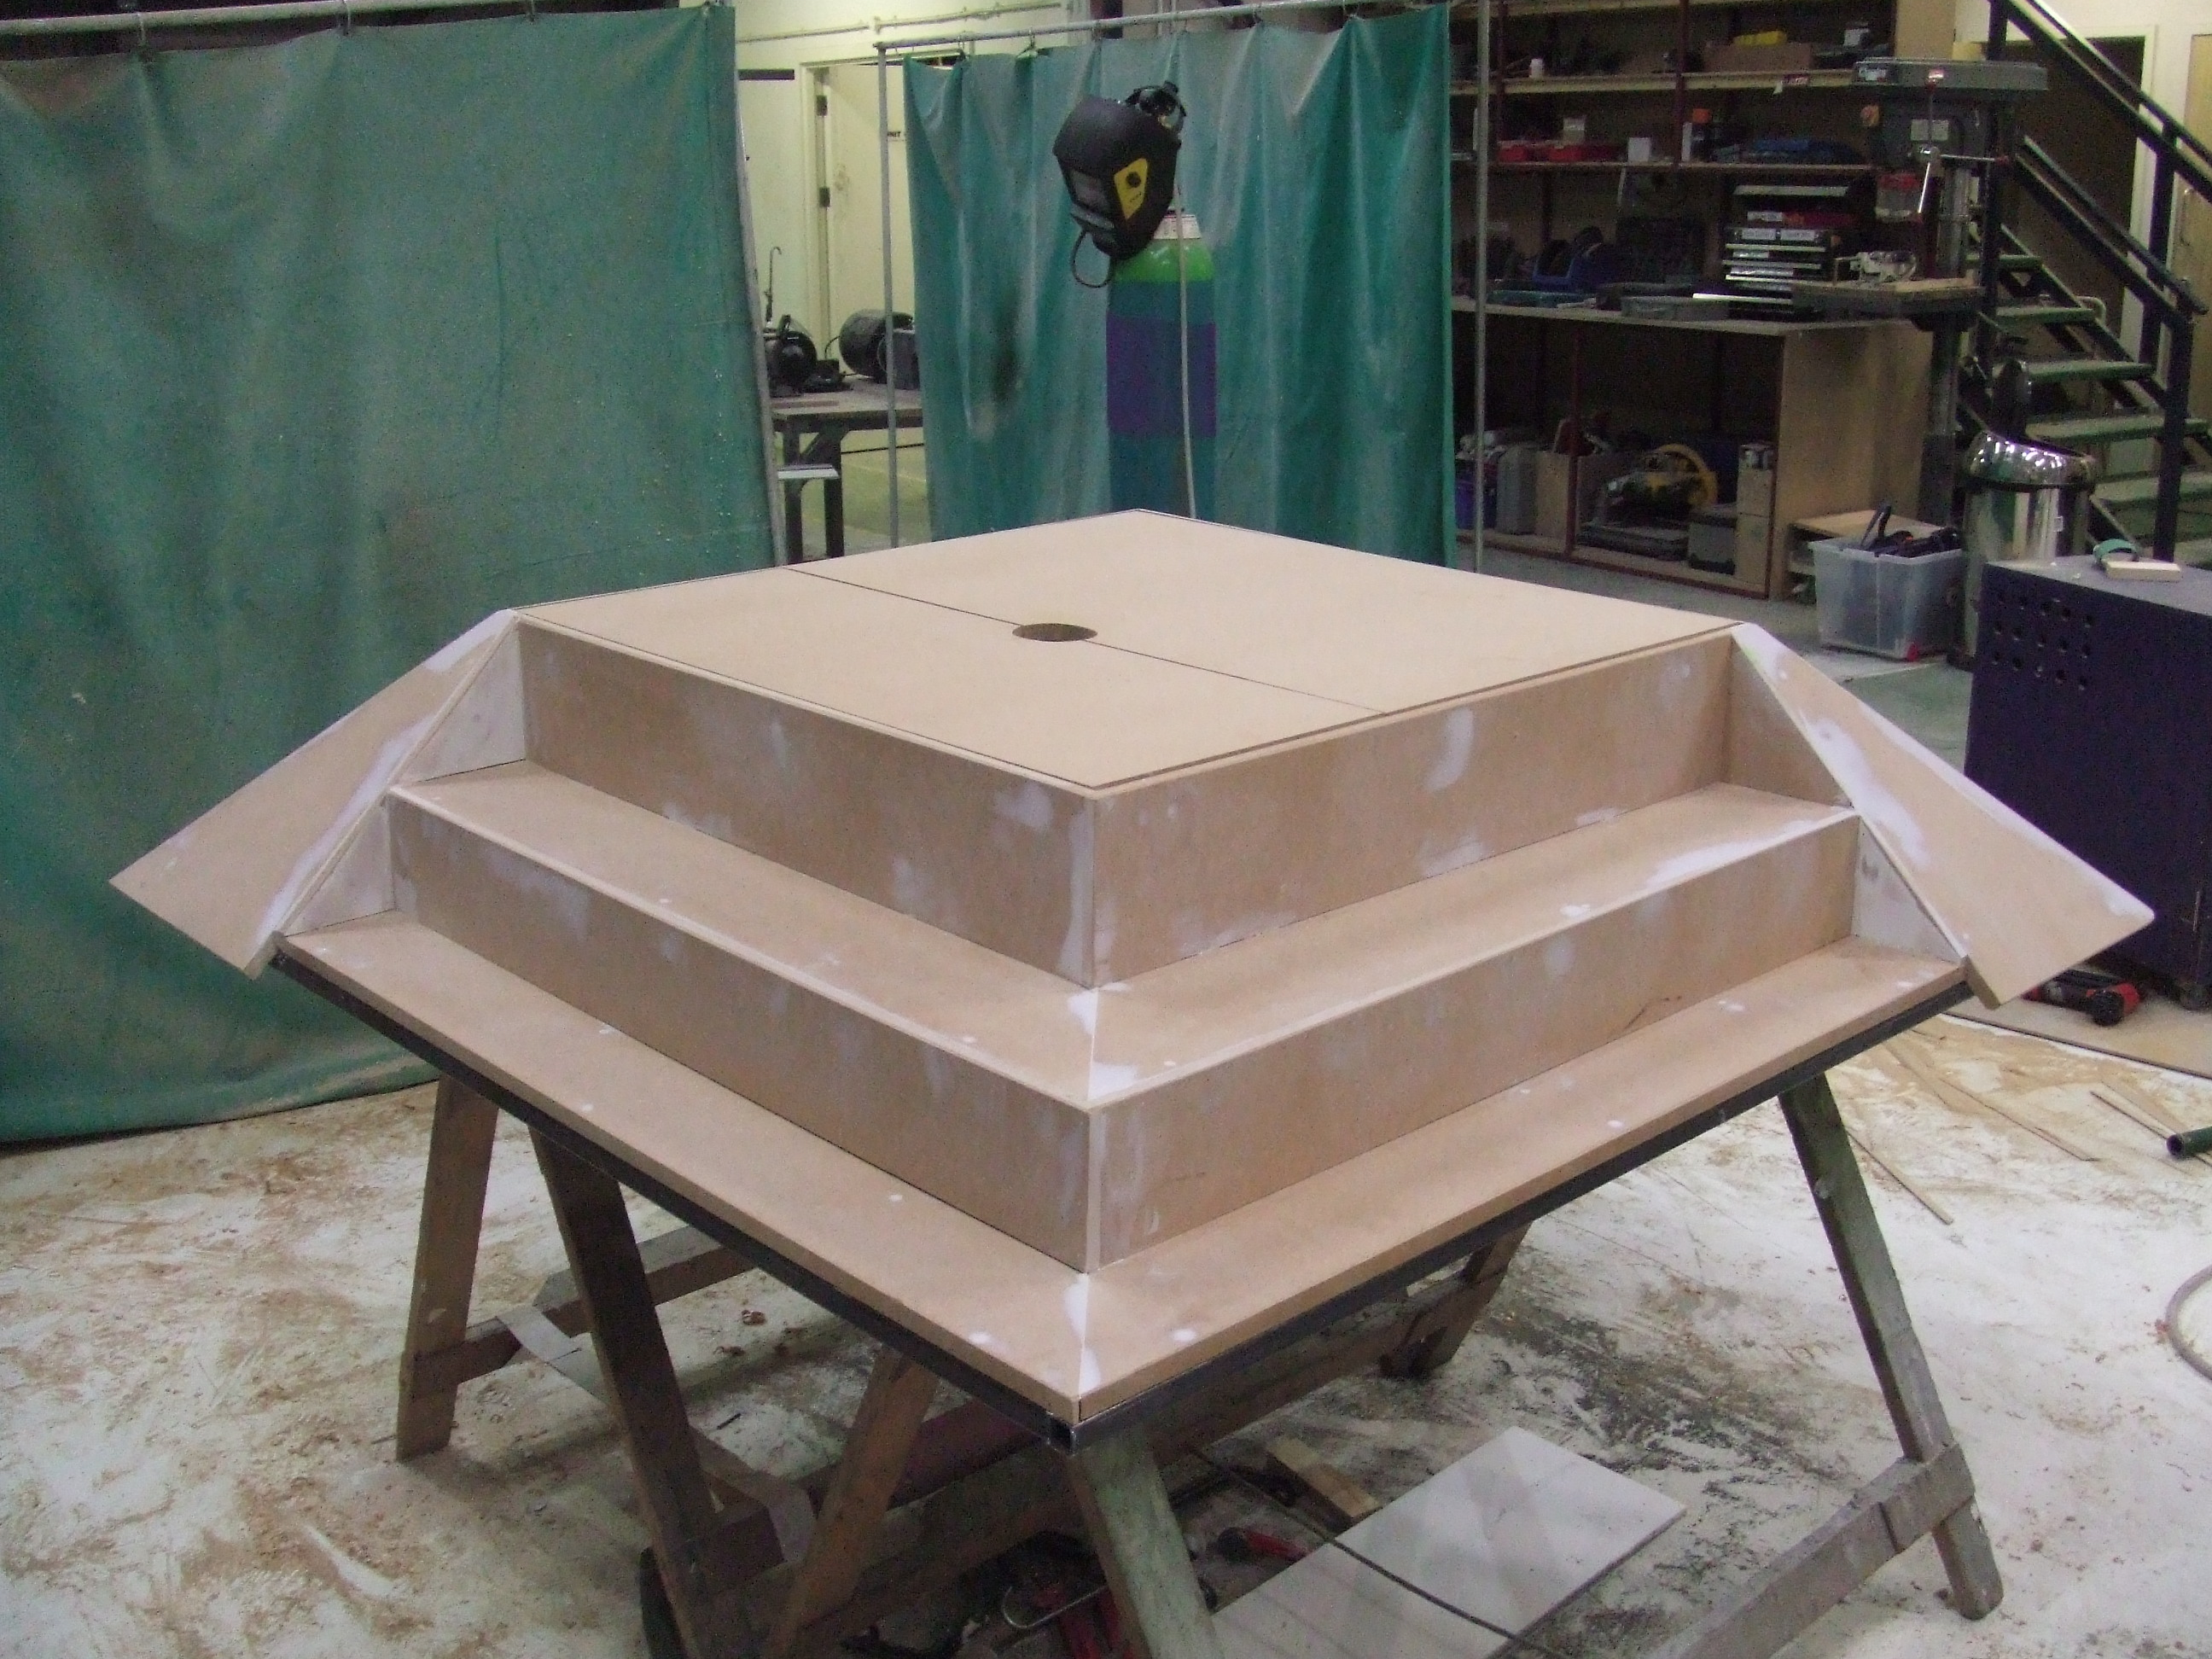 Syringe base unit in the workshop